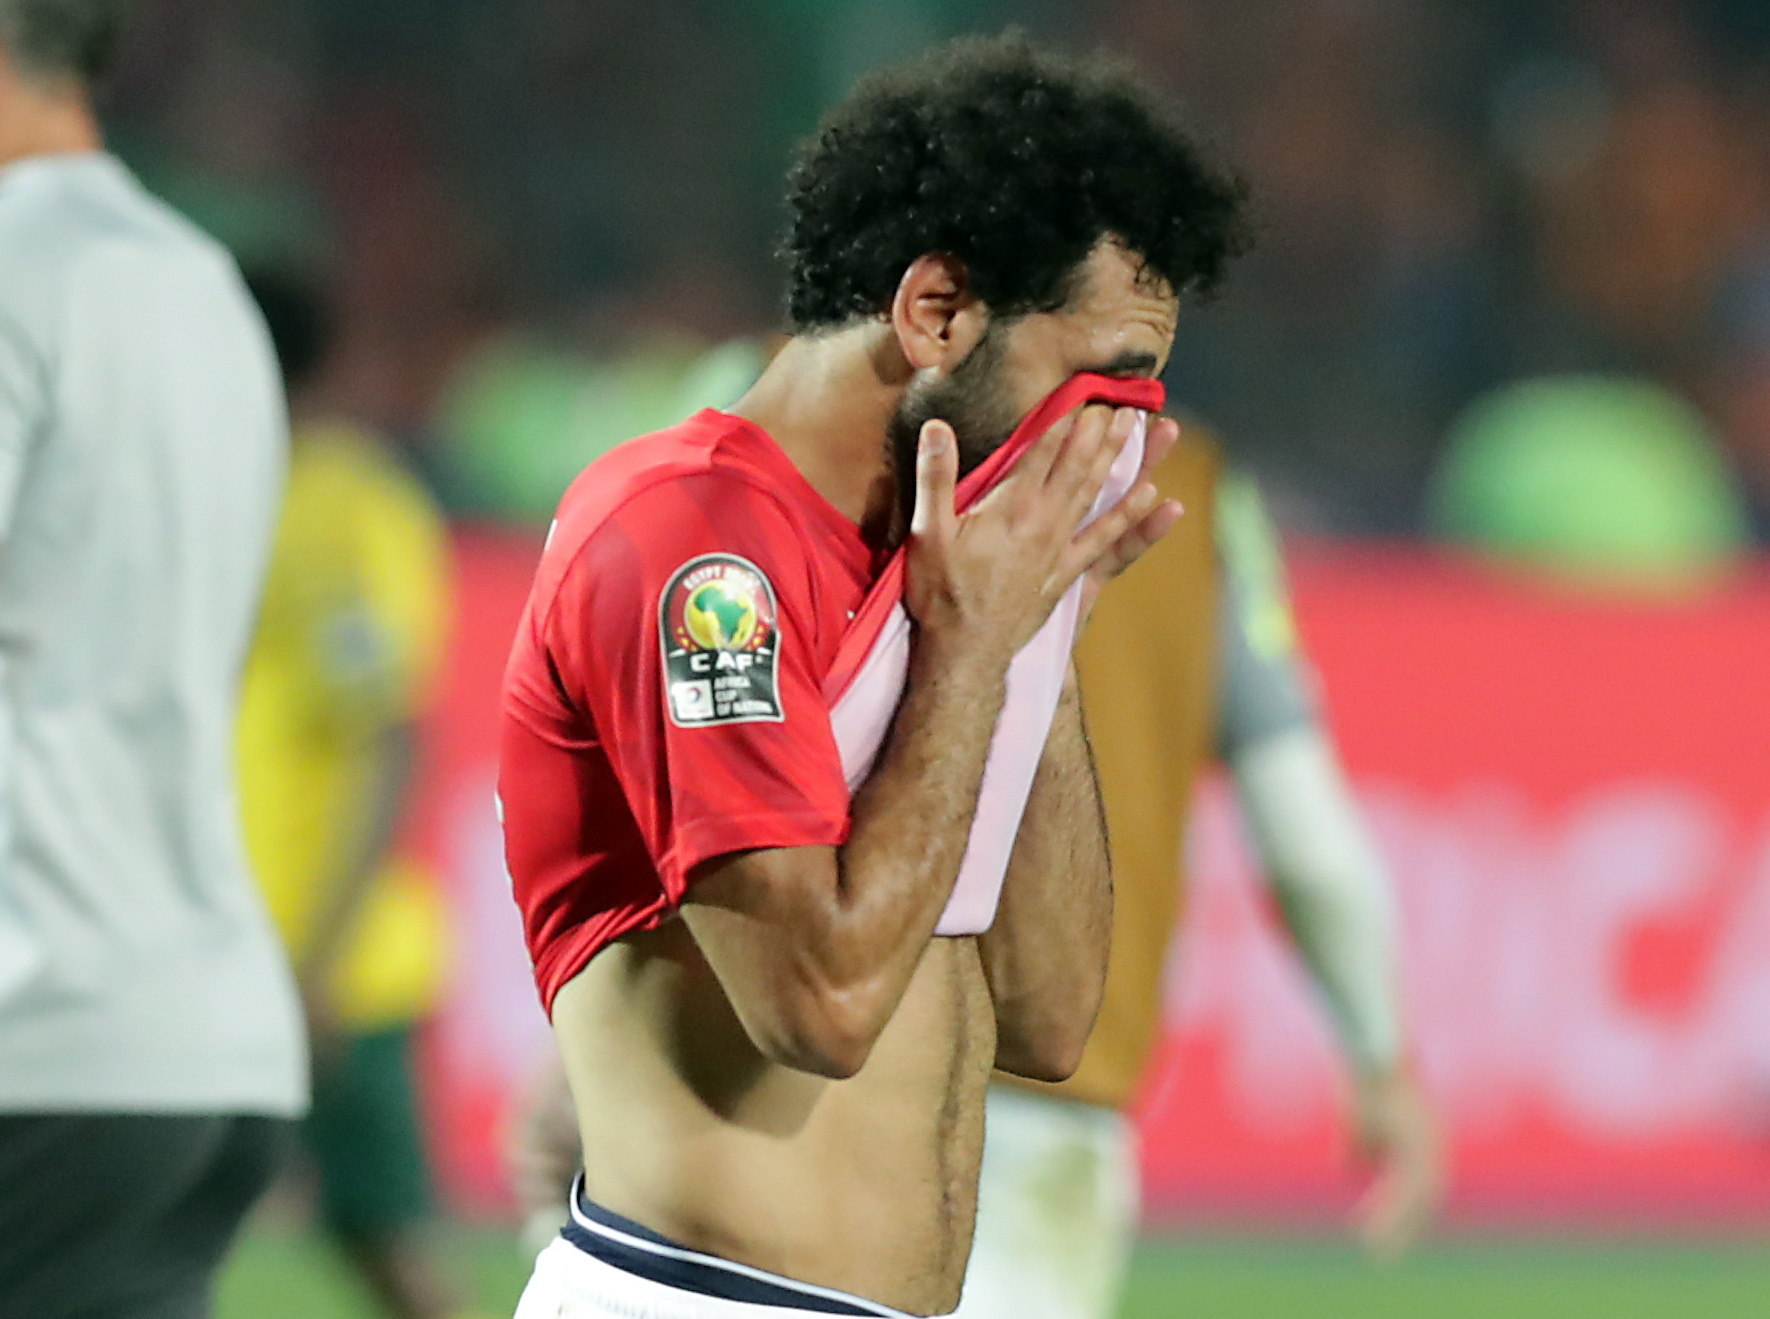 KEF001. Cairo (<HIT>Egypt</HIT>), 06/07/2019.- <HIT>Egypt</HIT>s Mohamesd <HIT>Salah</HIT> reacts after the 2019 Africa Cup of Nations (AFCON 2019) round of 16 soccer match between <HIT>Egypt</HIT> and South Africa in Cairo Stadium, Cairo, <HIT>Egypt</HIT>, 06 July 2019. (Egipto, Sudáfrica) EFE/EPA/KHALED ELFIQI